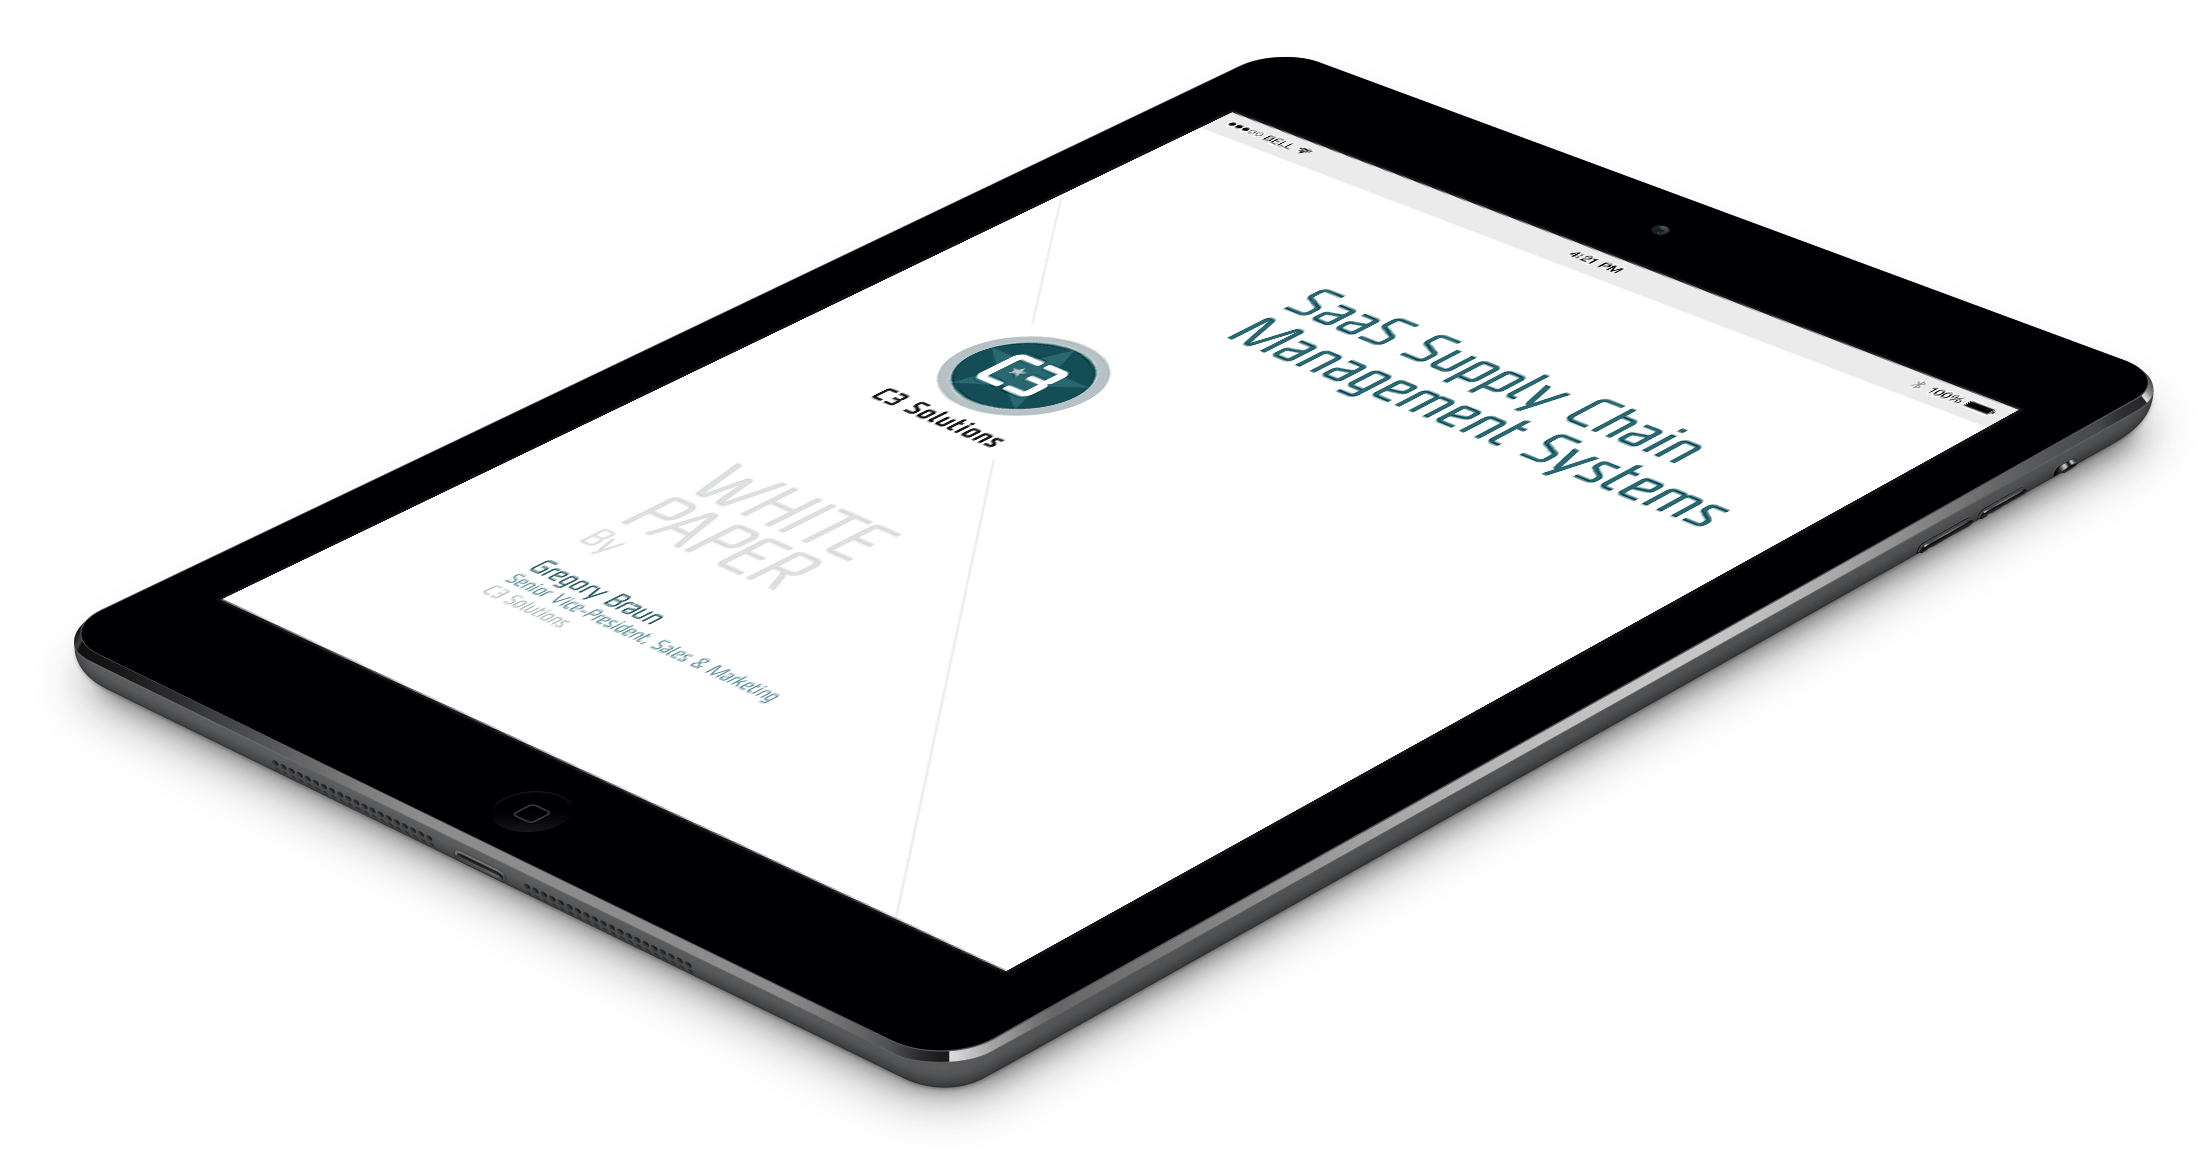 C3 Solutions' Latest White Paper Focuses on SaaS Supply